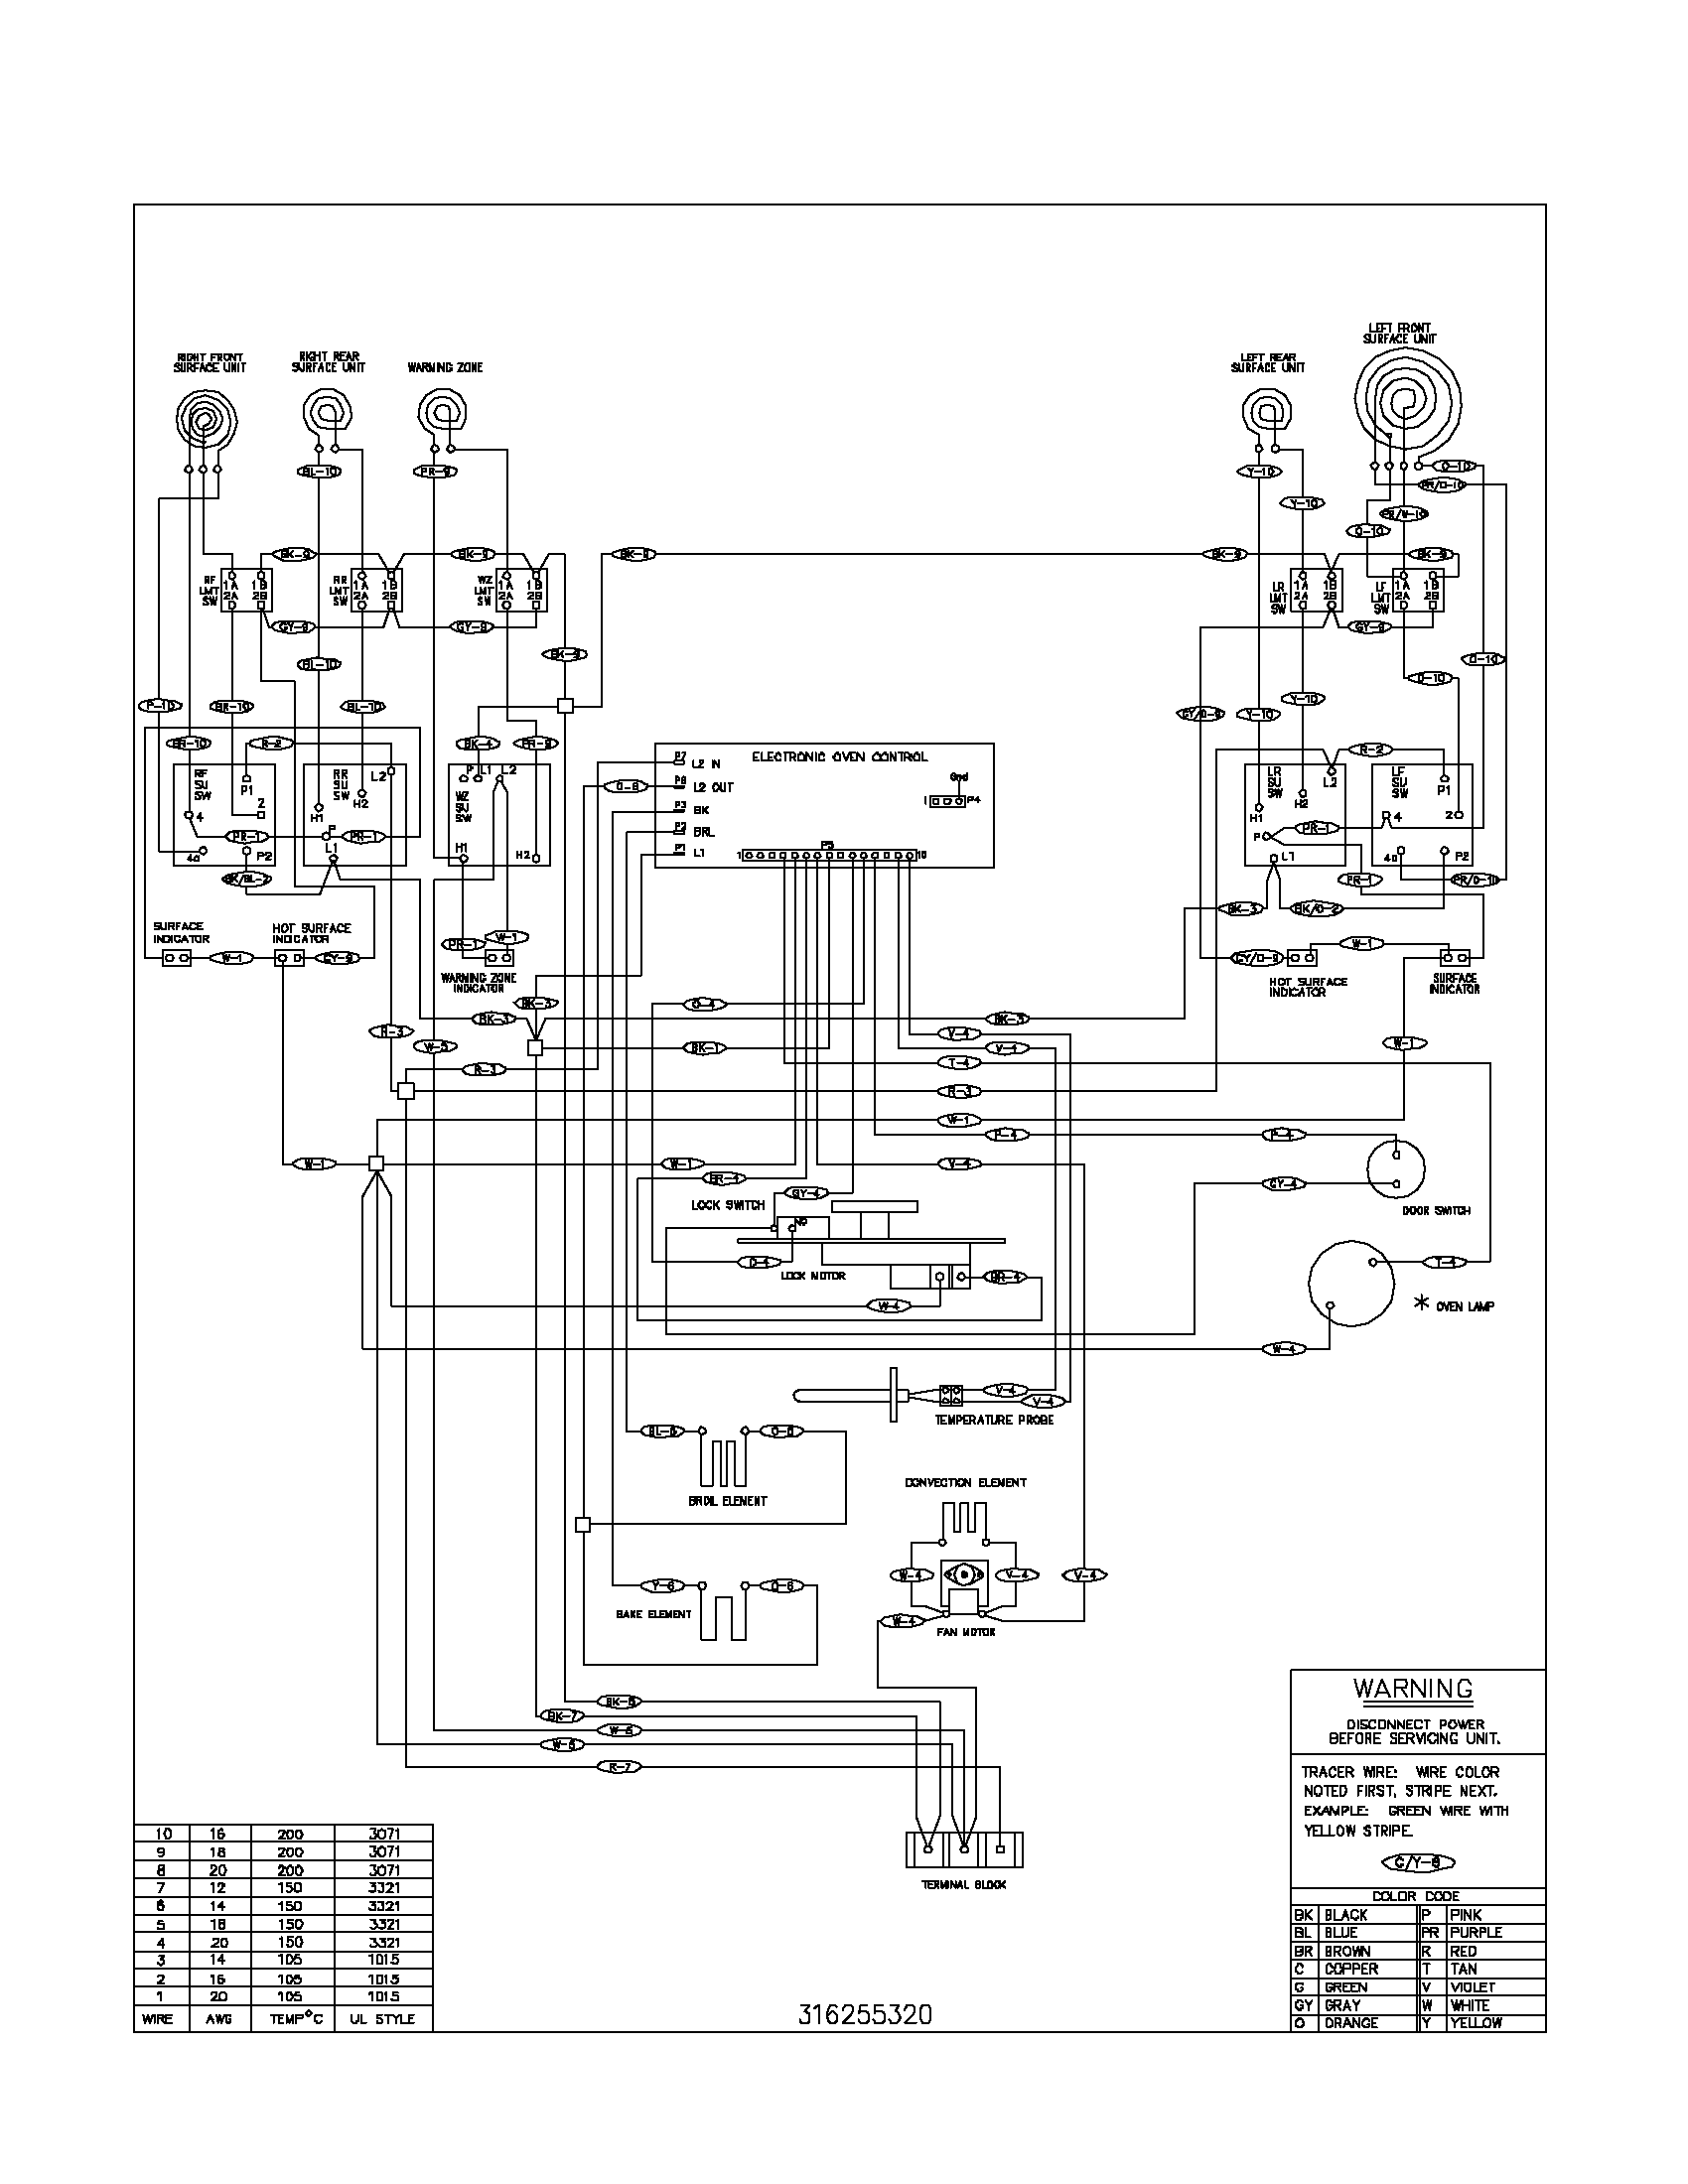 wiring diagram parts whirlpool fefl88acc electric range timer stove clocks and electric oven wiring diagram at honlapkeszites.co